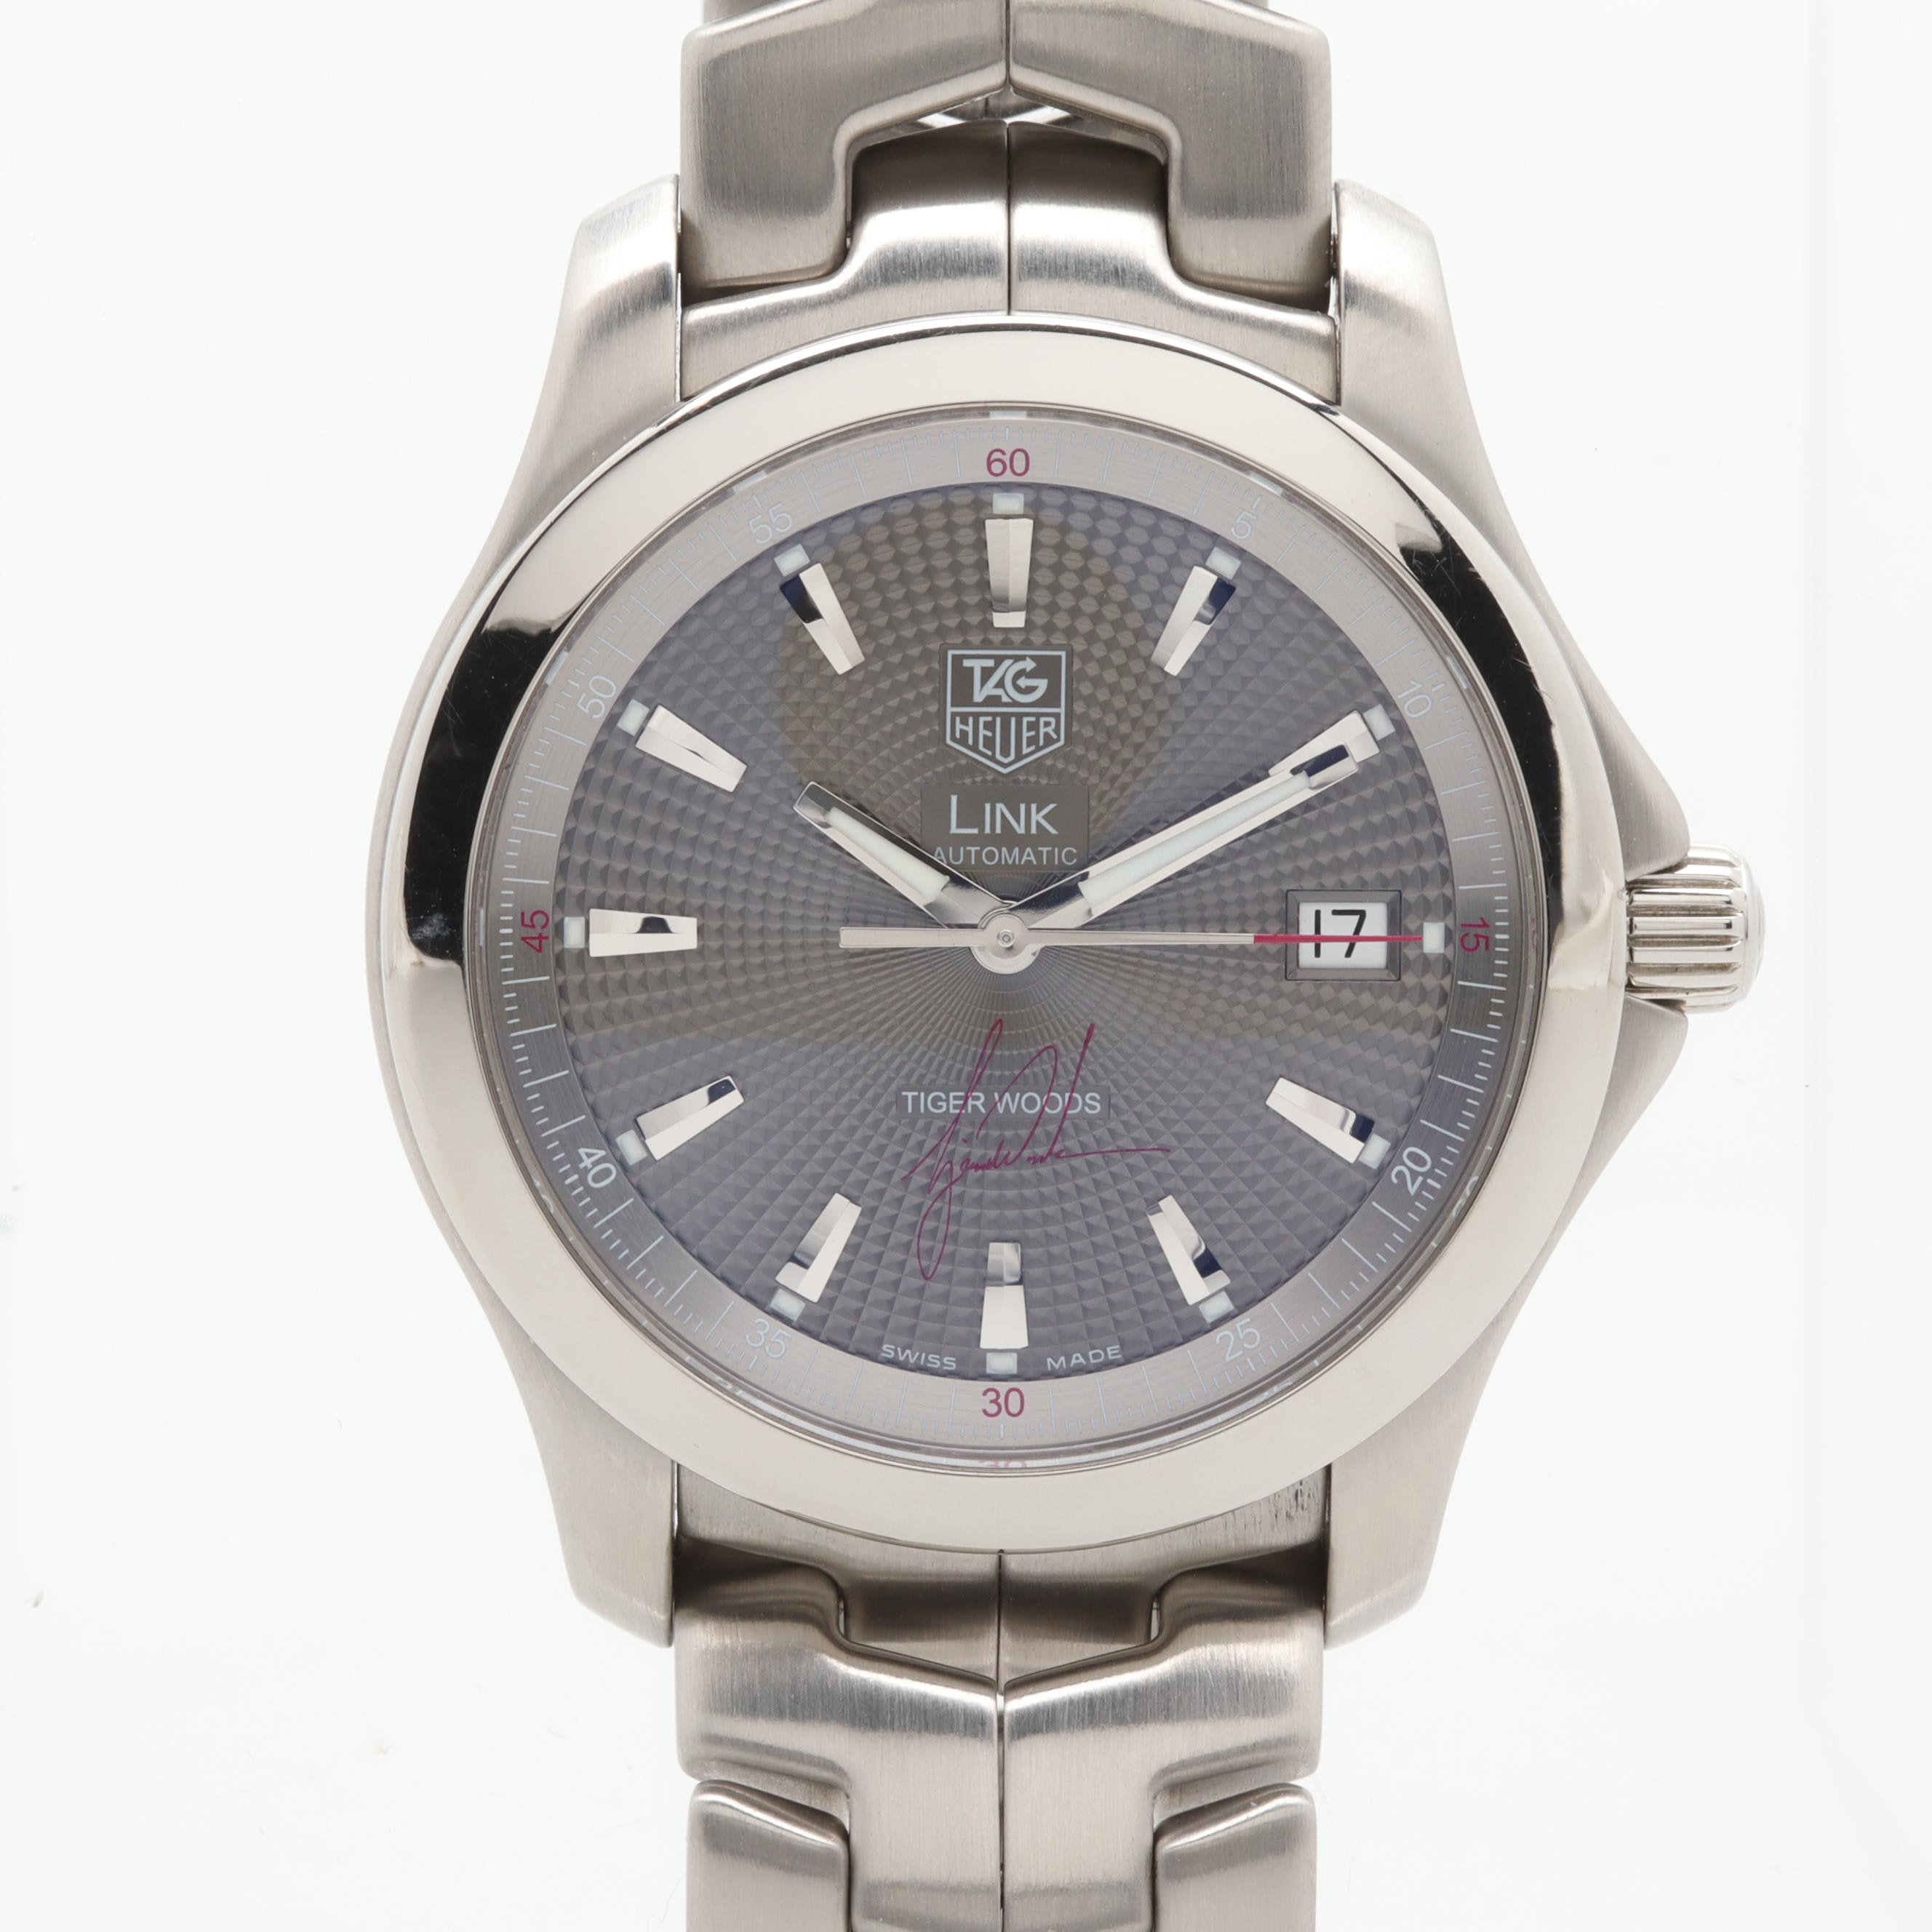 TAG Heuer Link Tiger Woods Limited Edition Stainless Steel Wristwatch